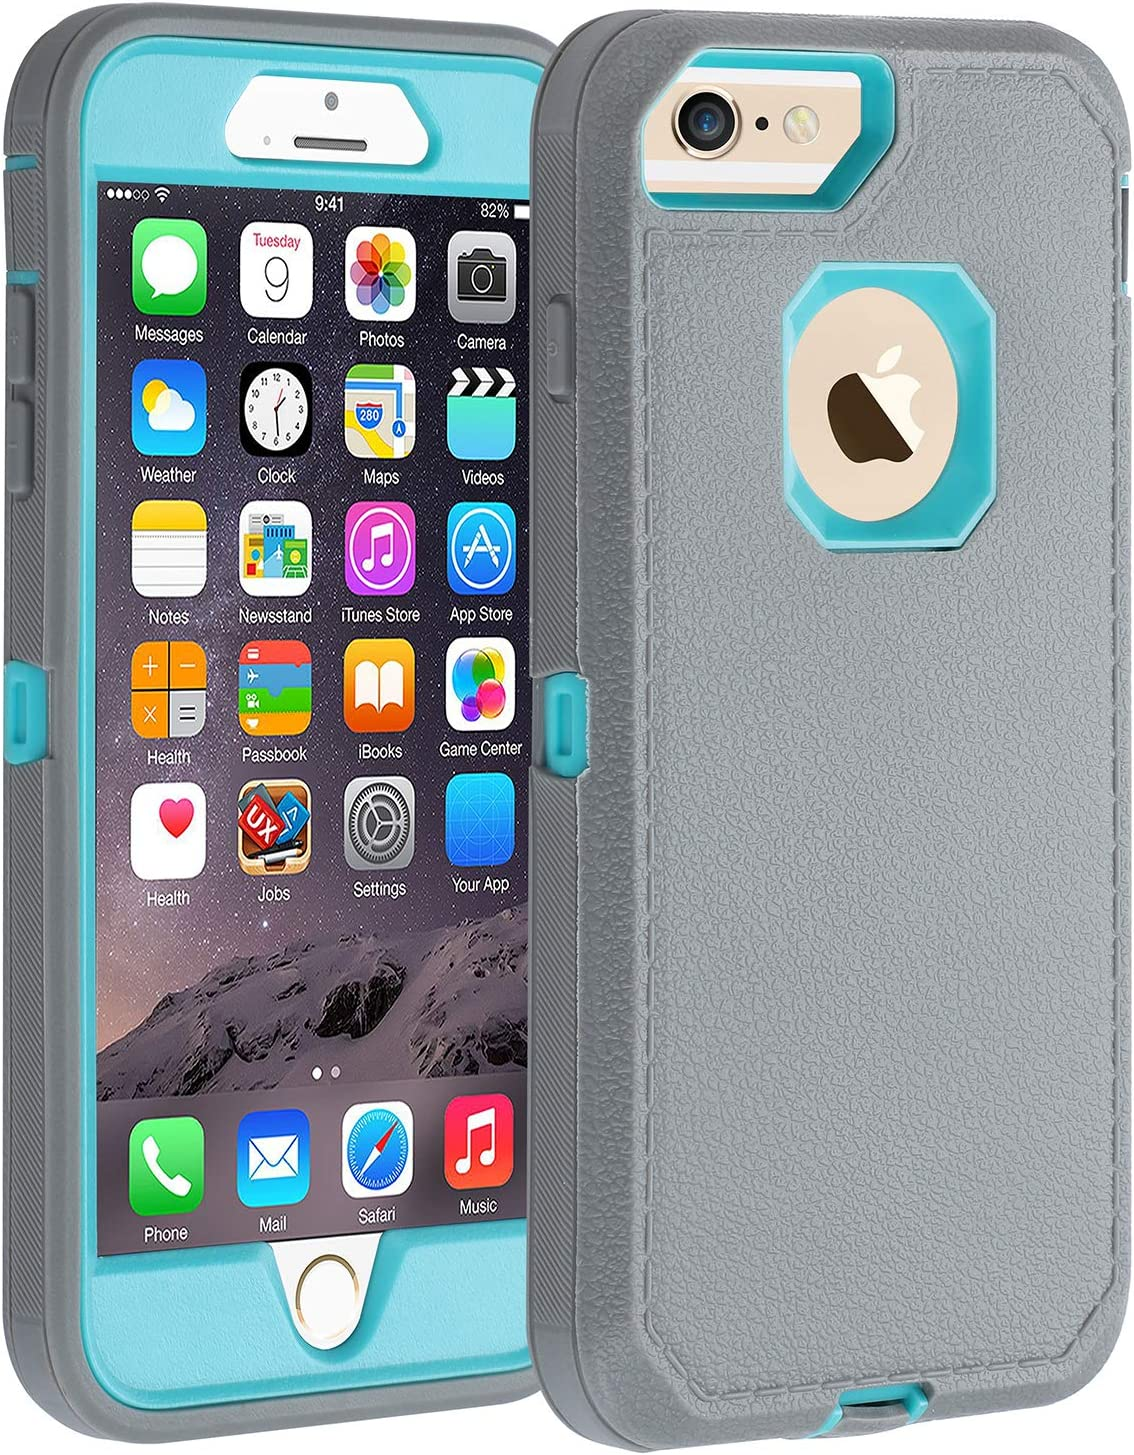 iPhone 6s Plus/6 Plus Case,Heavy Duty Armor 3 in 1 Rugged Cover with Screen Bumper Dust-Proof Shockproof Drop-Proof Scratch-Resistant Shell for iPhone 6Plus/6sPlus 5.5inch,Grey/Green